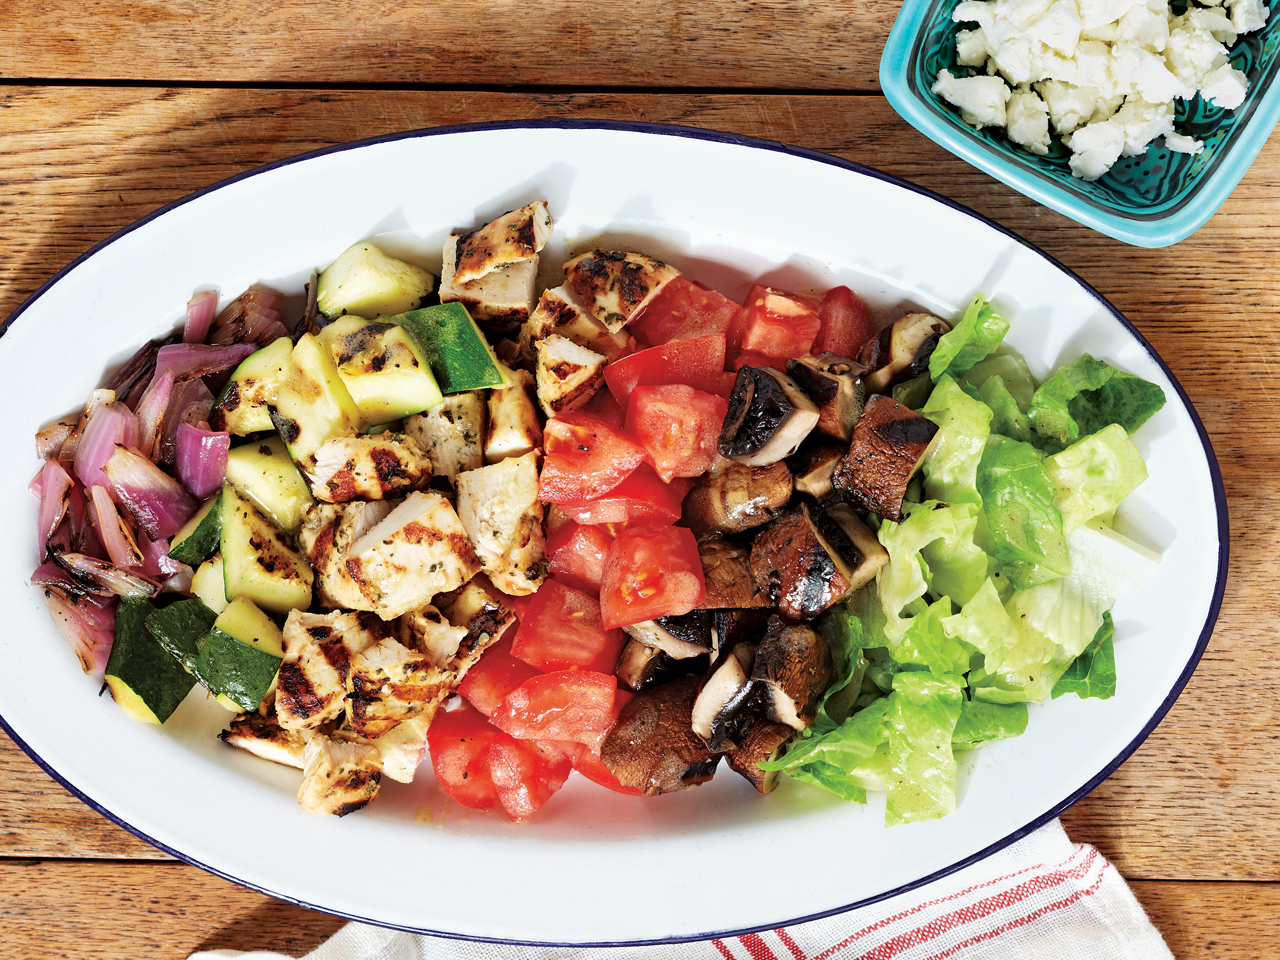 plate with grilled chicken, zucchini, red onion, mushrooms and lettuce and tomato